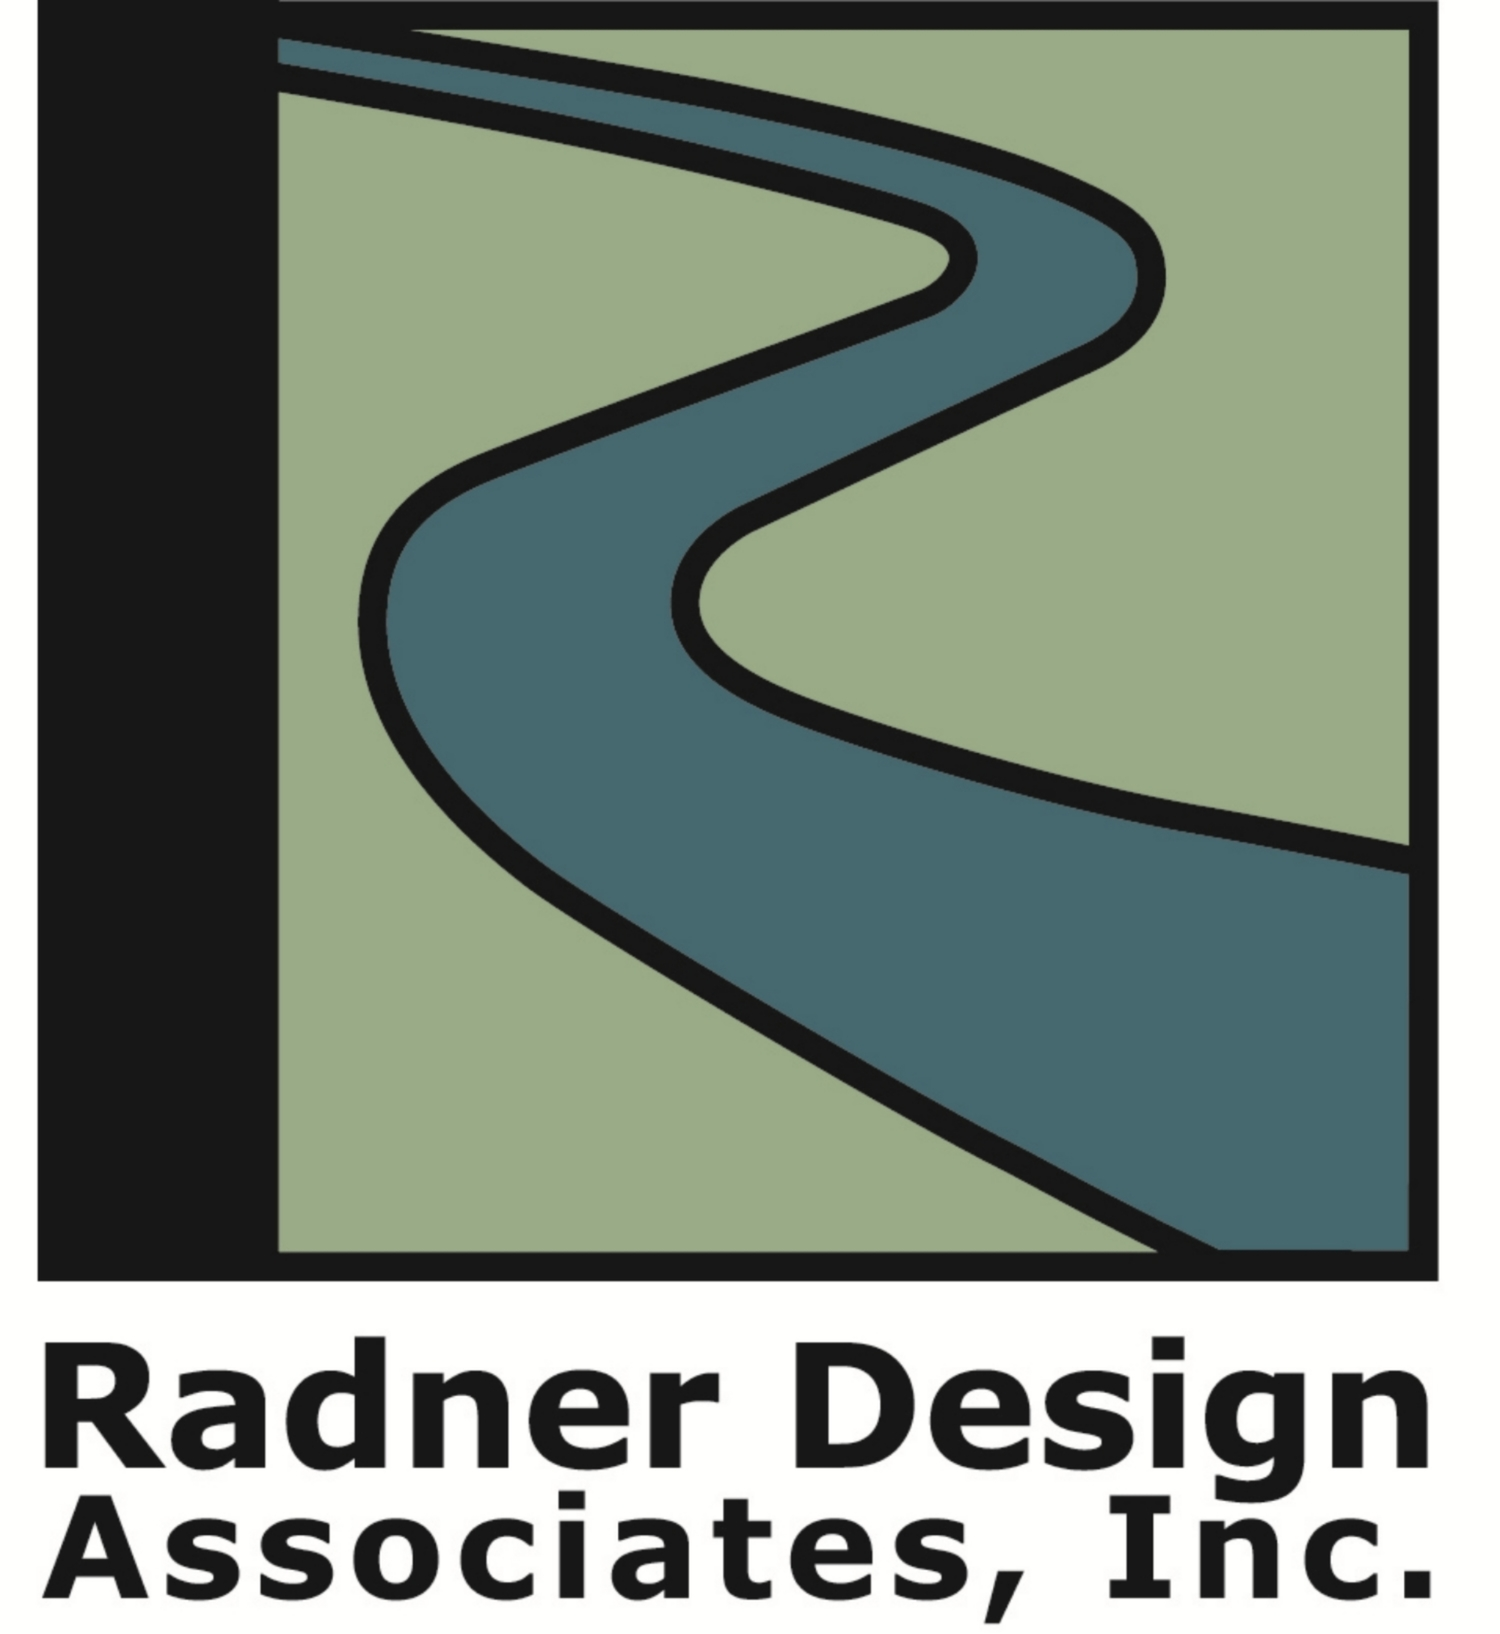 Radner Design Associates, Inc.